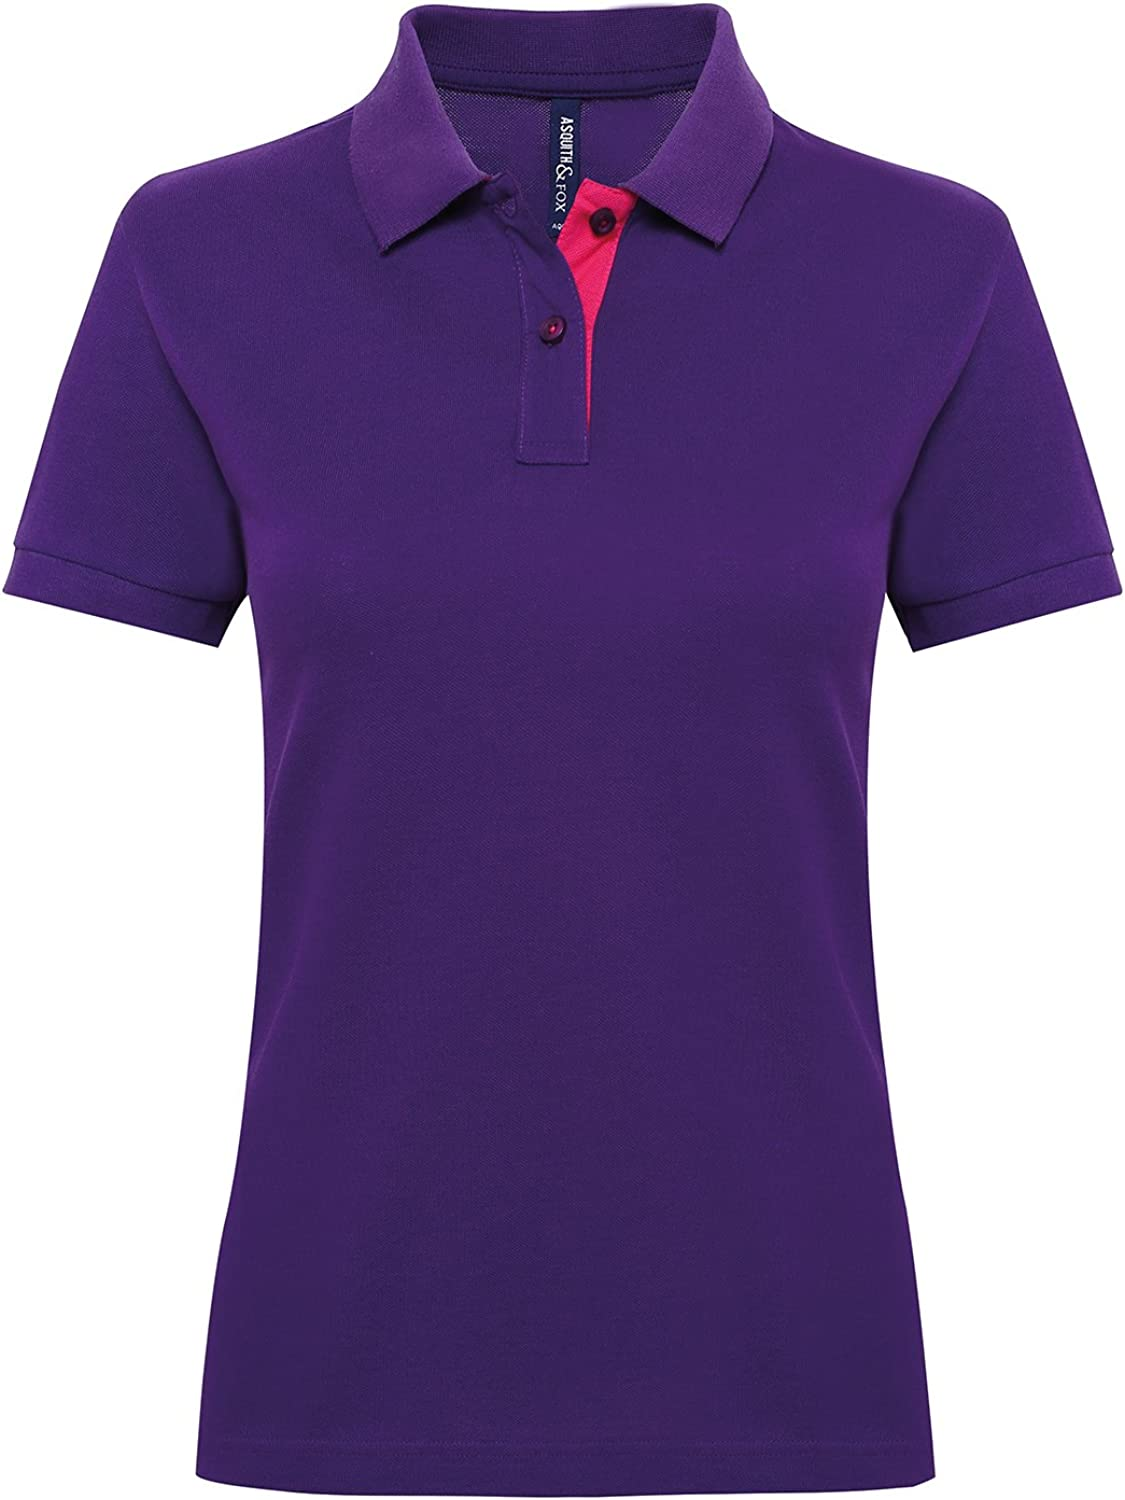 Asquith /& Fox Mens Classic Fit Performance Blend Polo T Shirt 25 Colours Avail